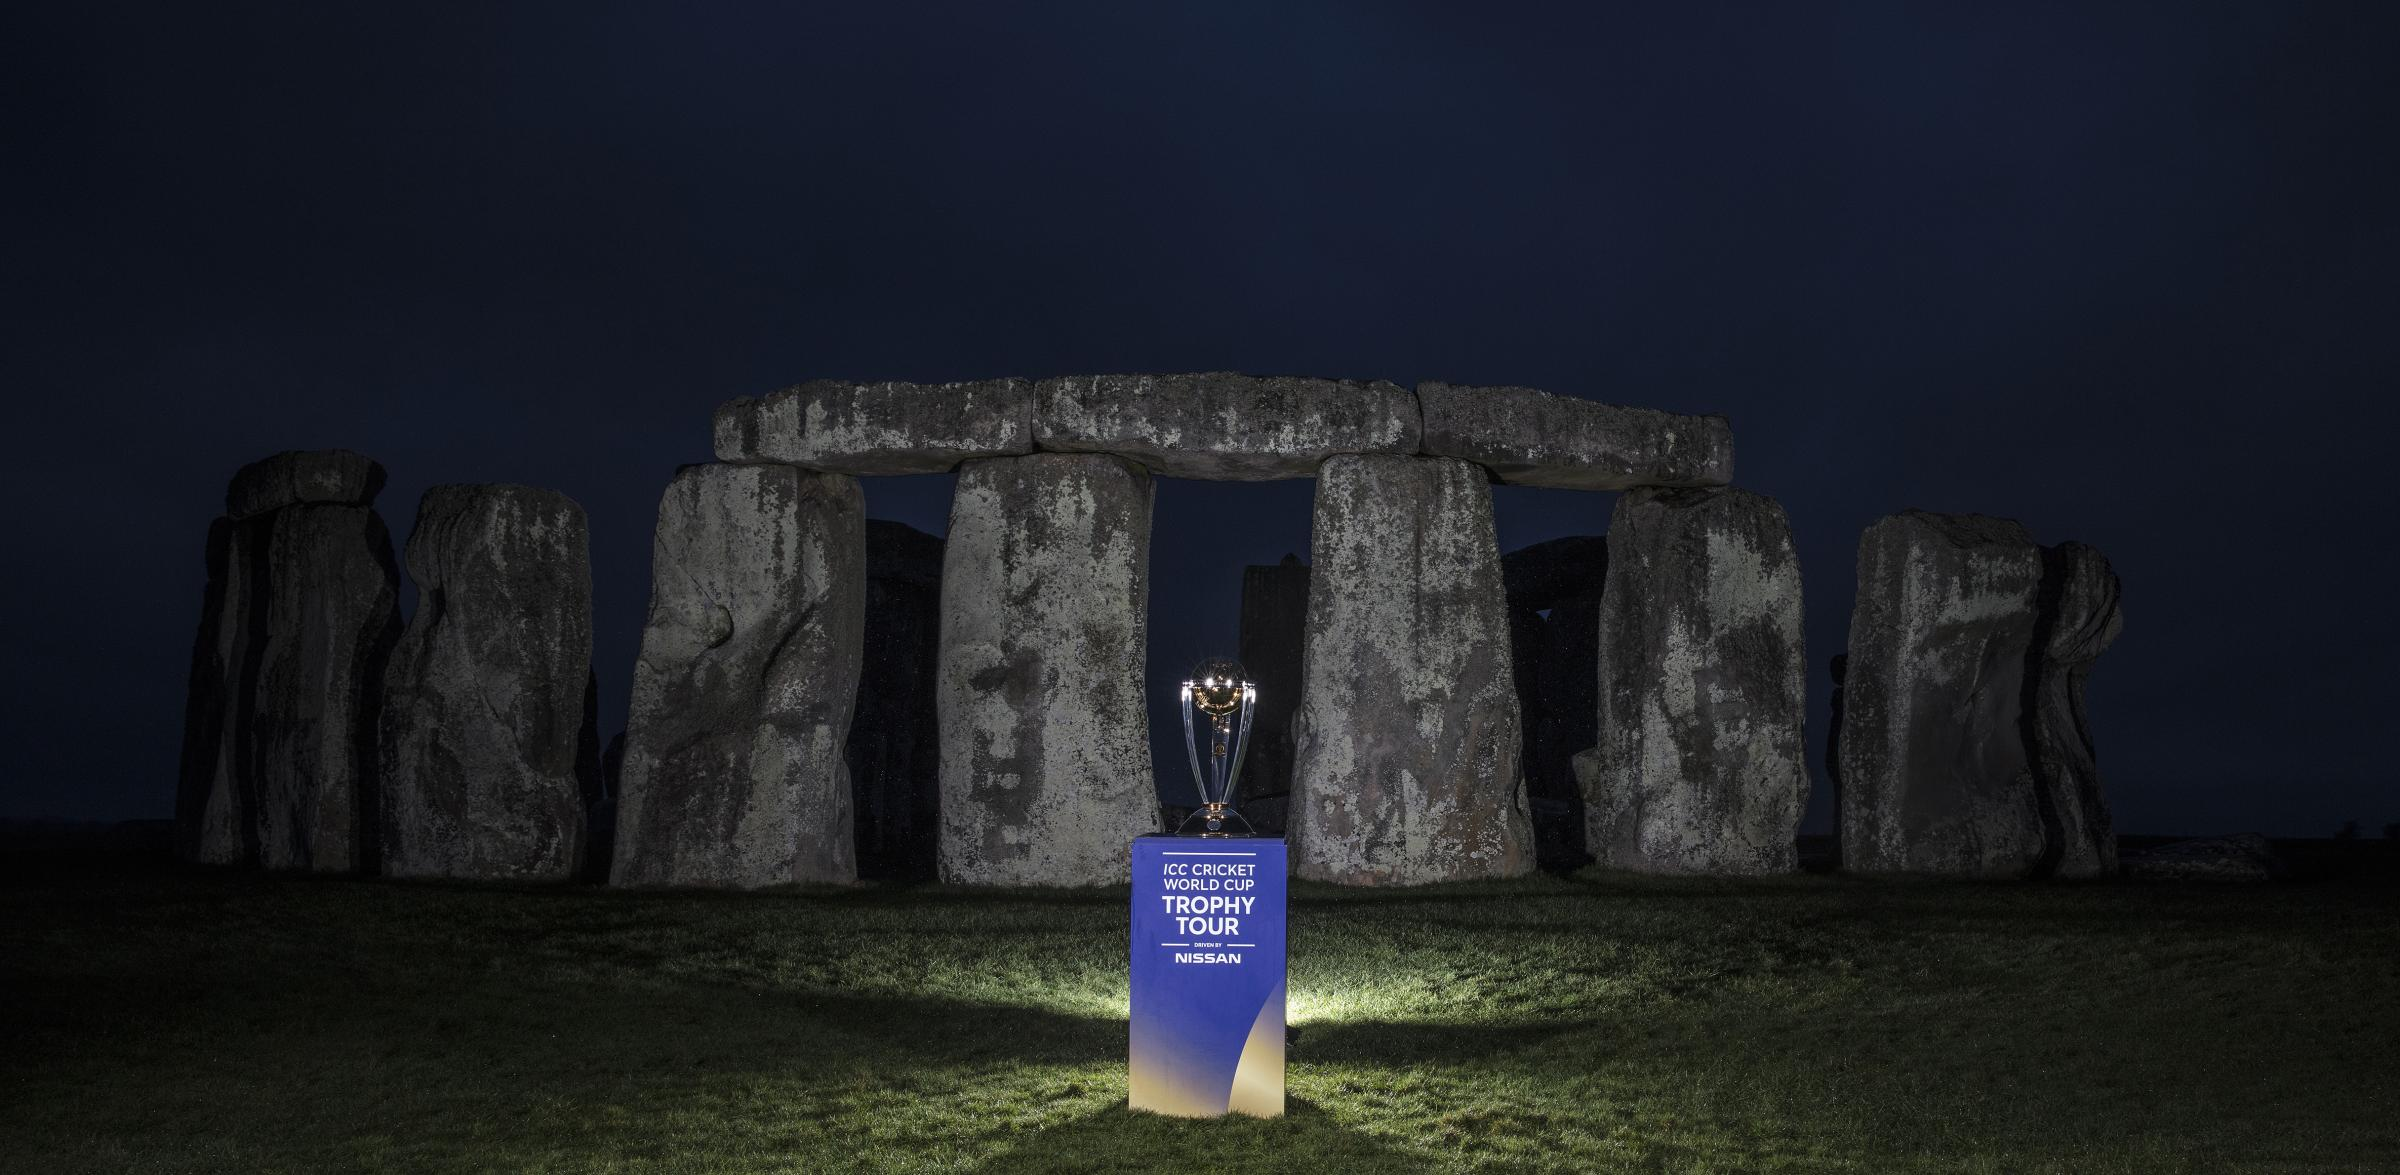 Wiltshire was chosen as a location for the ICC Cricket World Cup Trophy Tour, driven by Nissan, in light of the rousing success of Wiltshire Council's Big Pledge Challenge.